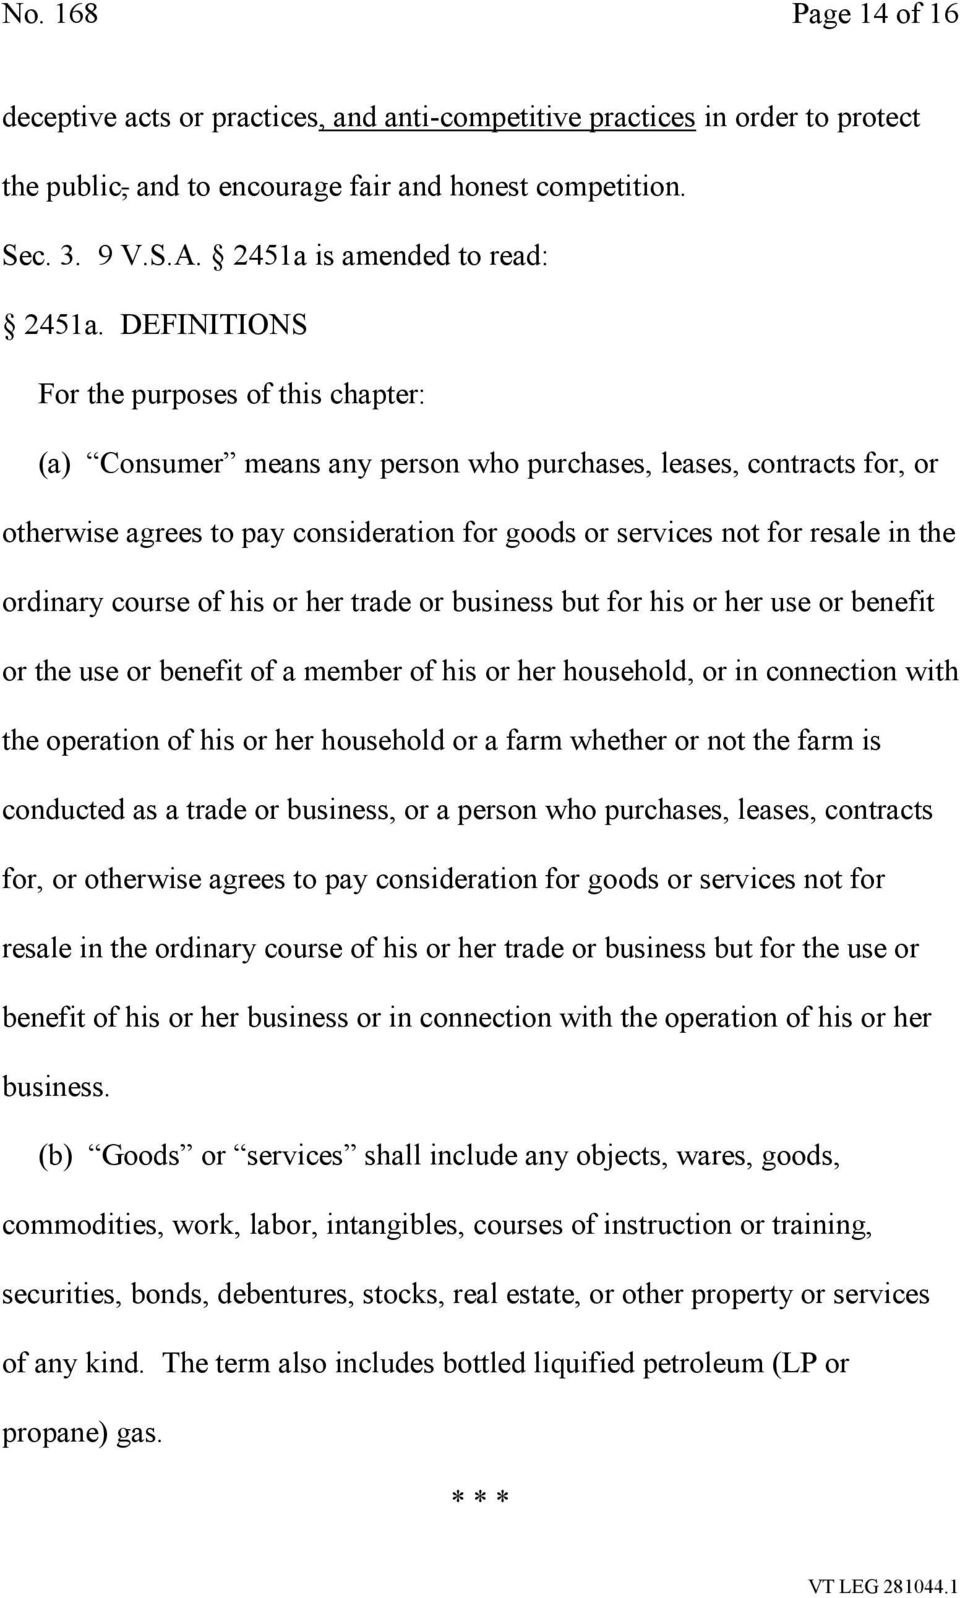 DEFINITIONS For the purposes of this chapter: (a) Consumer means any person who purchases, leases, contracts for, or otherwise agrees to pay consideration for goods or services not for resale in the